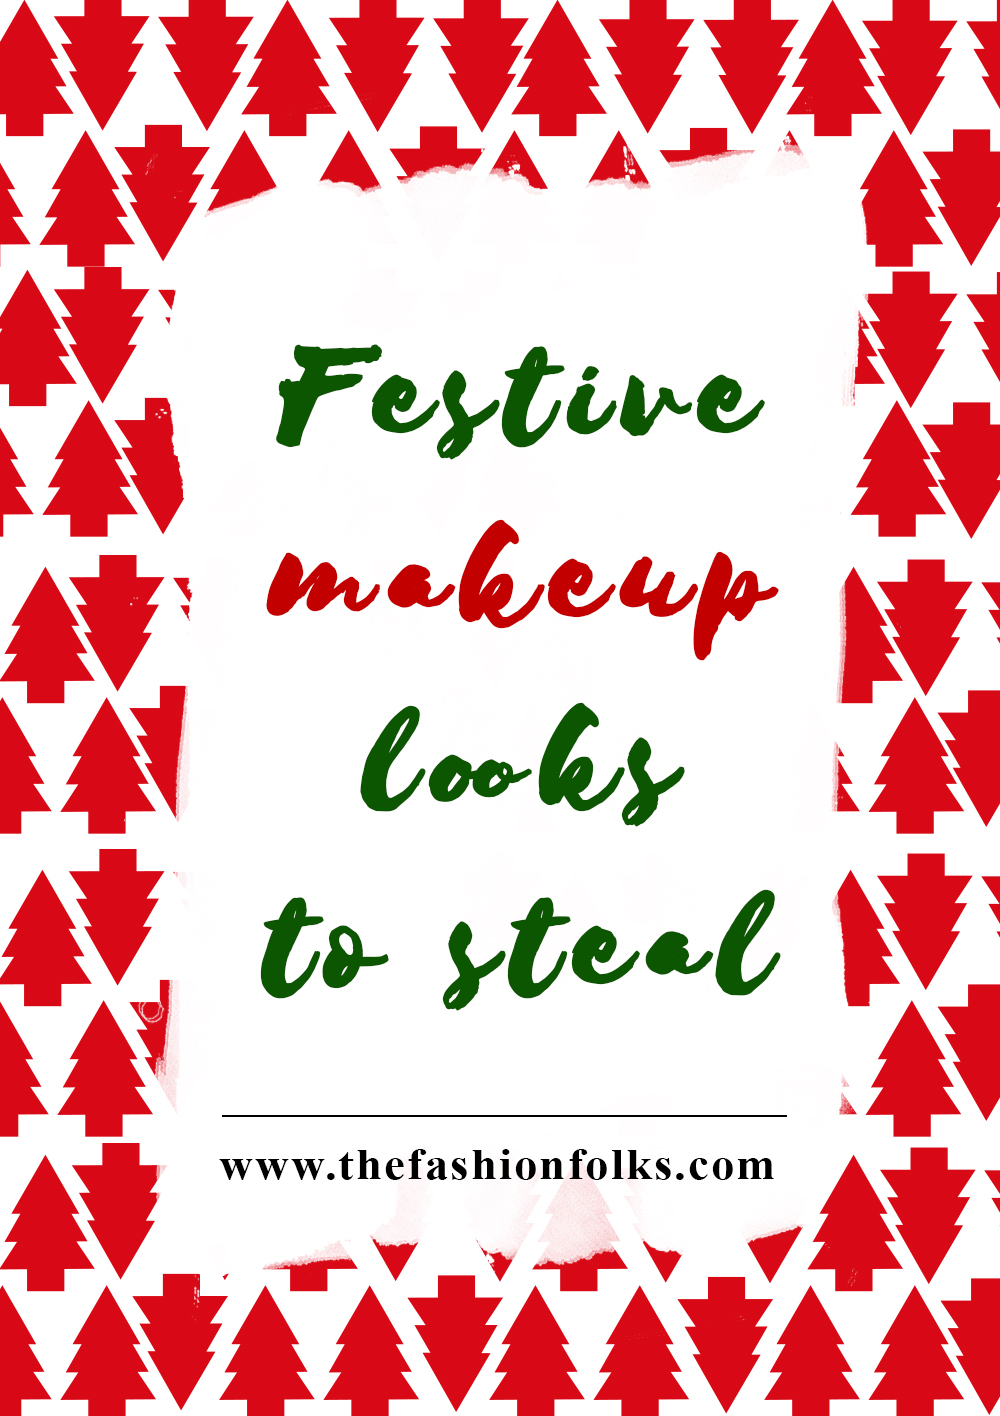 Festive Makeup Looks To Steal - Christmas Week Edition with Keira Knightely and Beyoncé Makeup Looks   The Fashion Folks